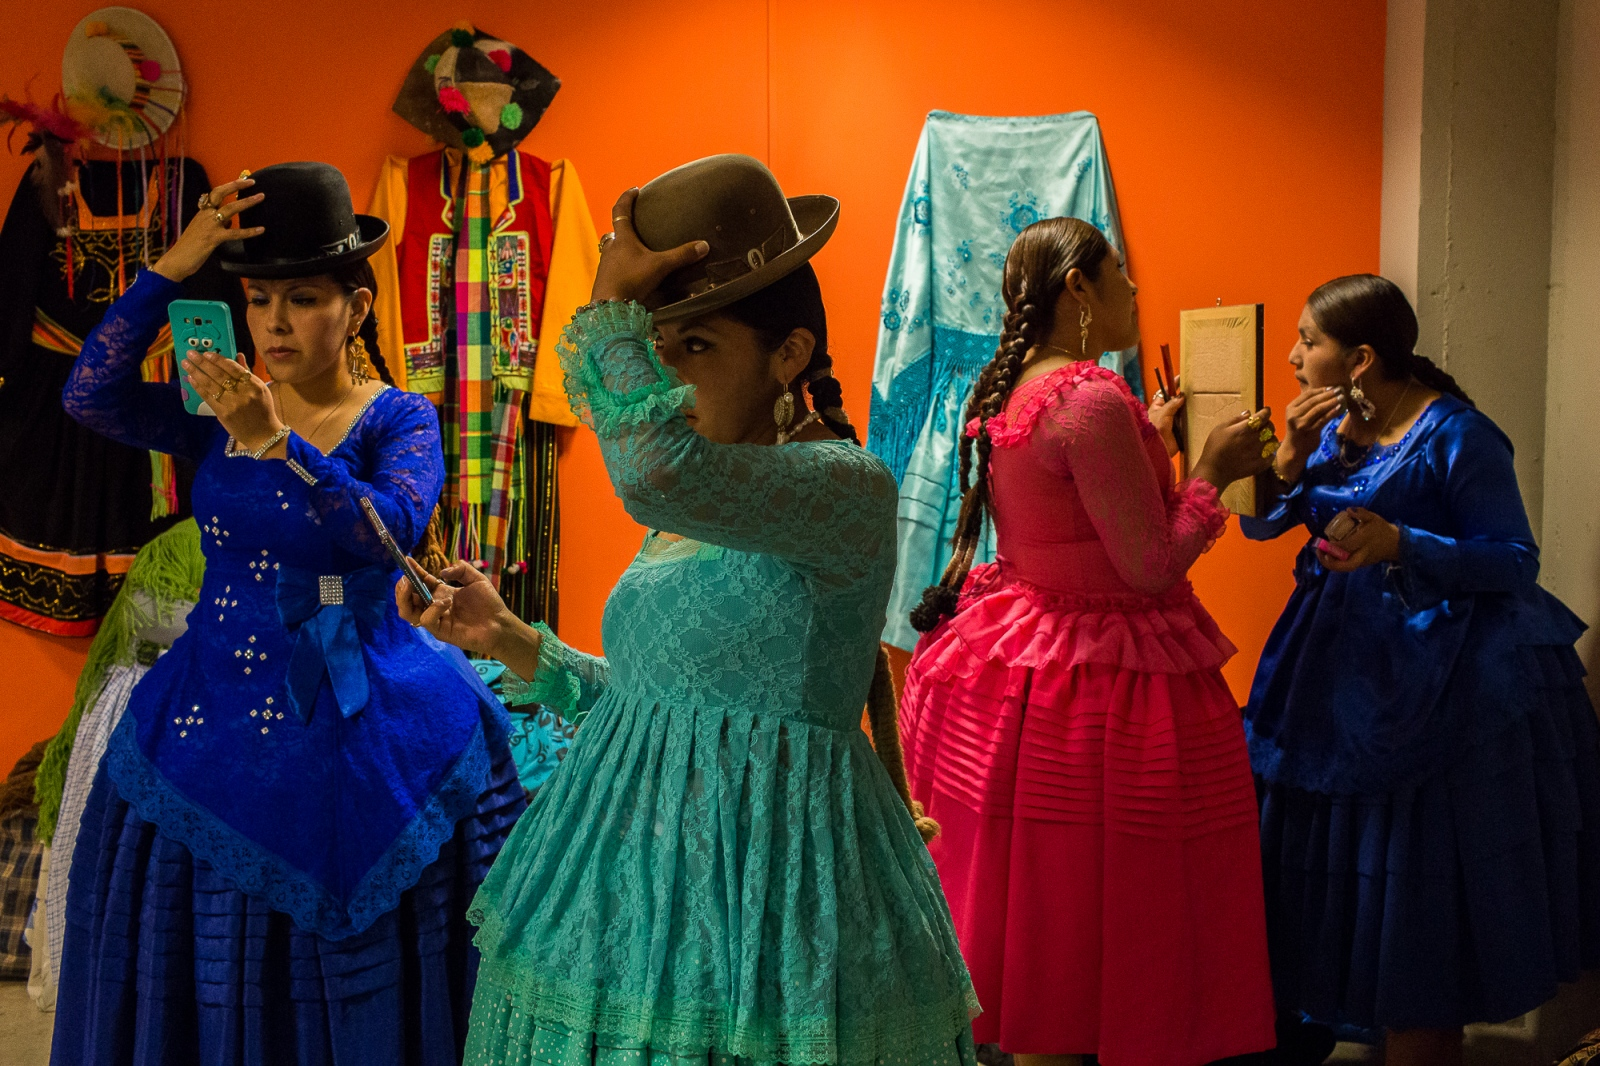 Cholitas prepare themselves backstage before ascending the catwalk at a fashion show in El Alto.